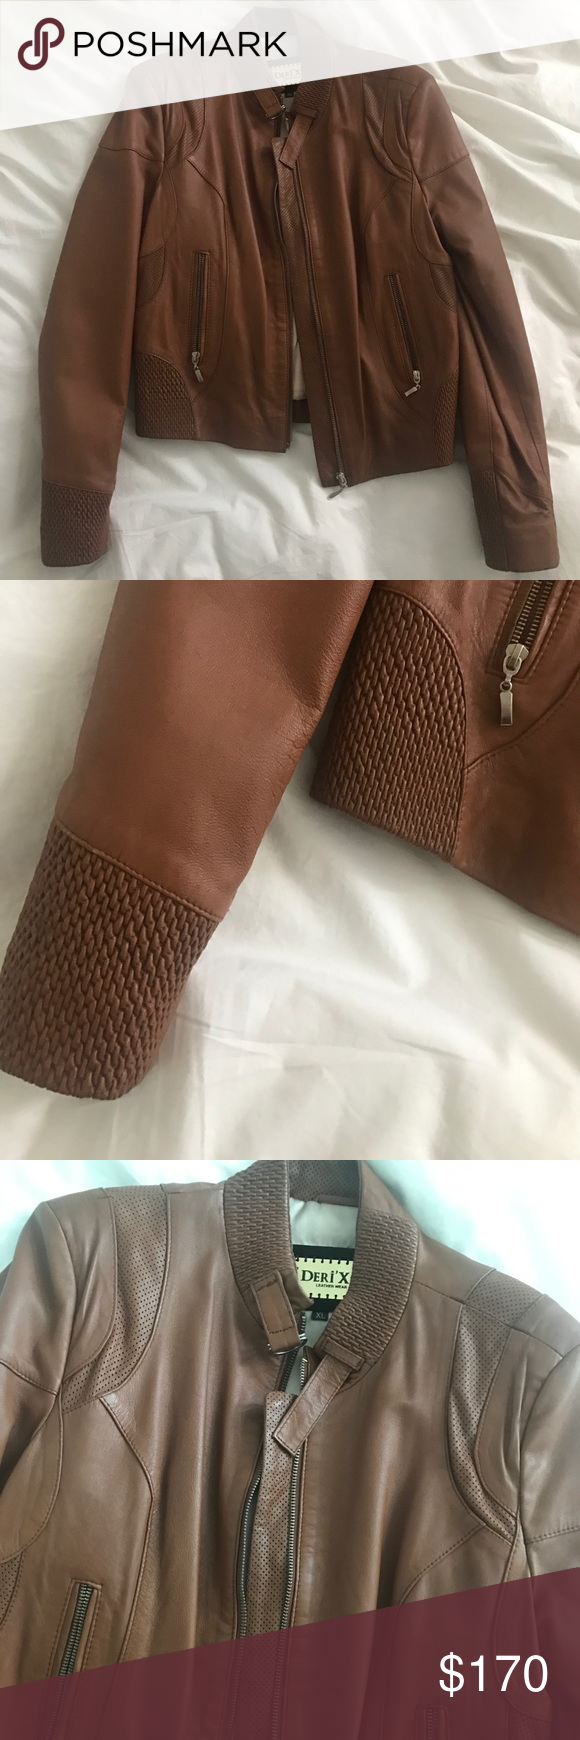 High Quality Leather Jacket from Turkey. BRAND NEW Brown